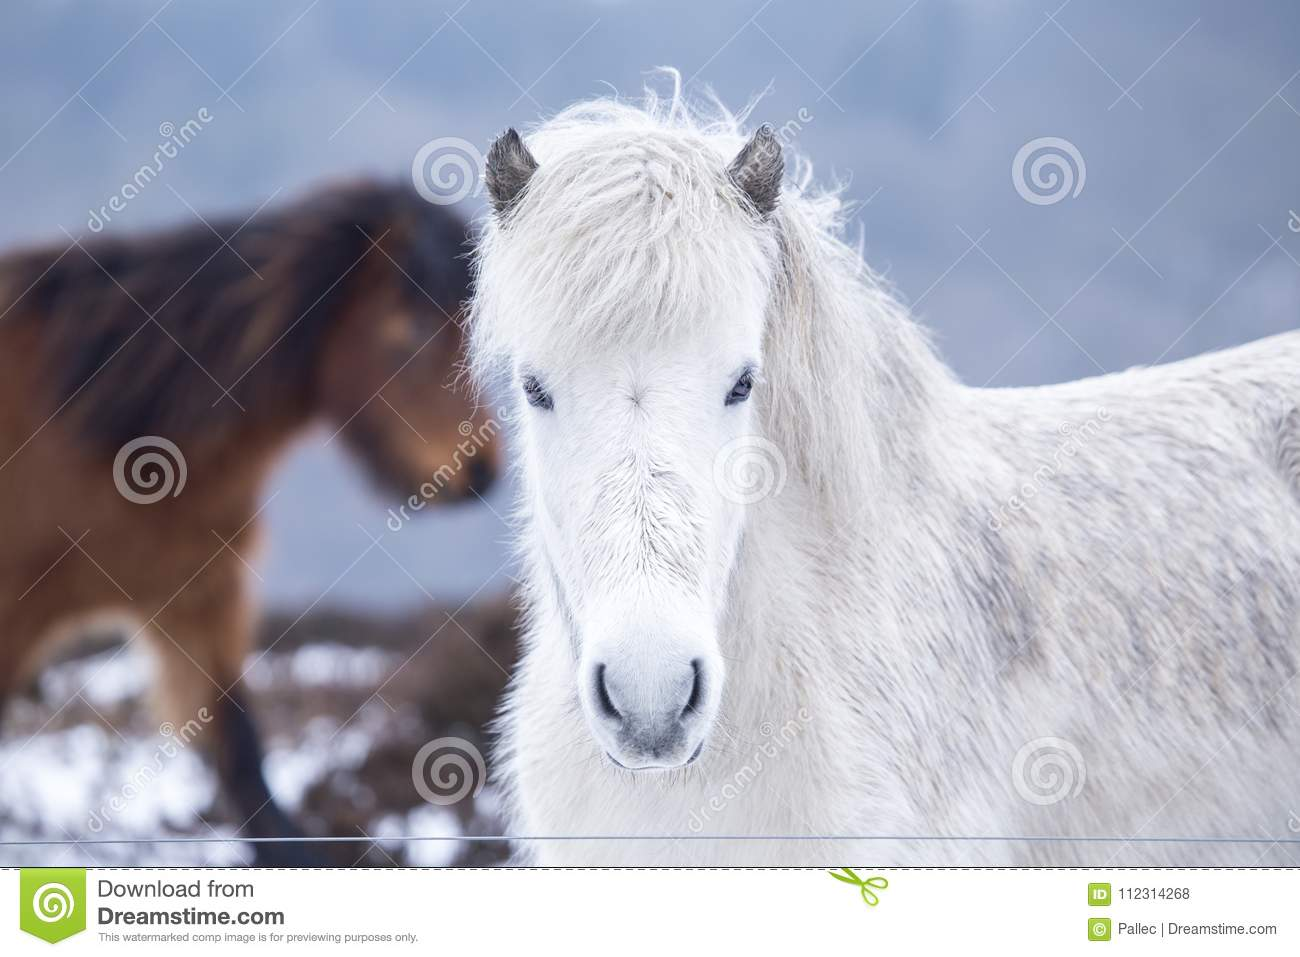 White Wild Horse Looking In The Camera Stock Photo Image Of Equine Beautiful 112314268